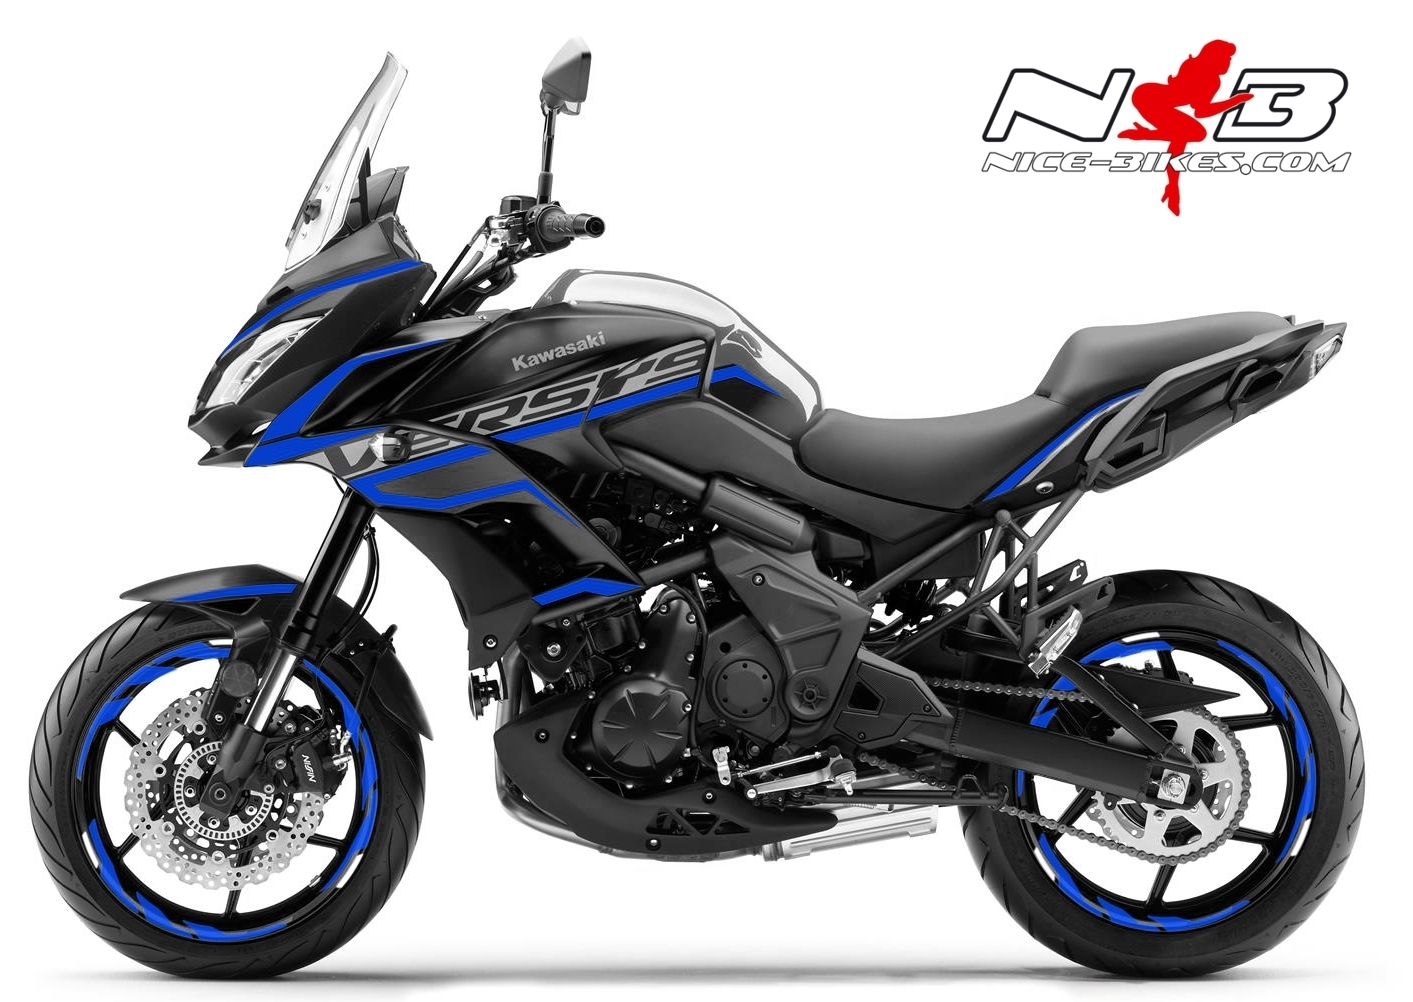 Foliendesign Kawasaki Versys 650 Bj. 2020 Racing Blue